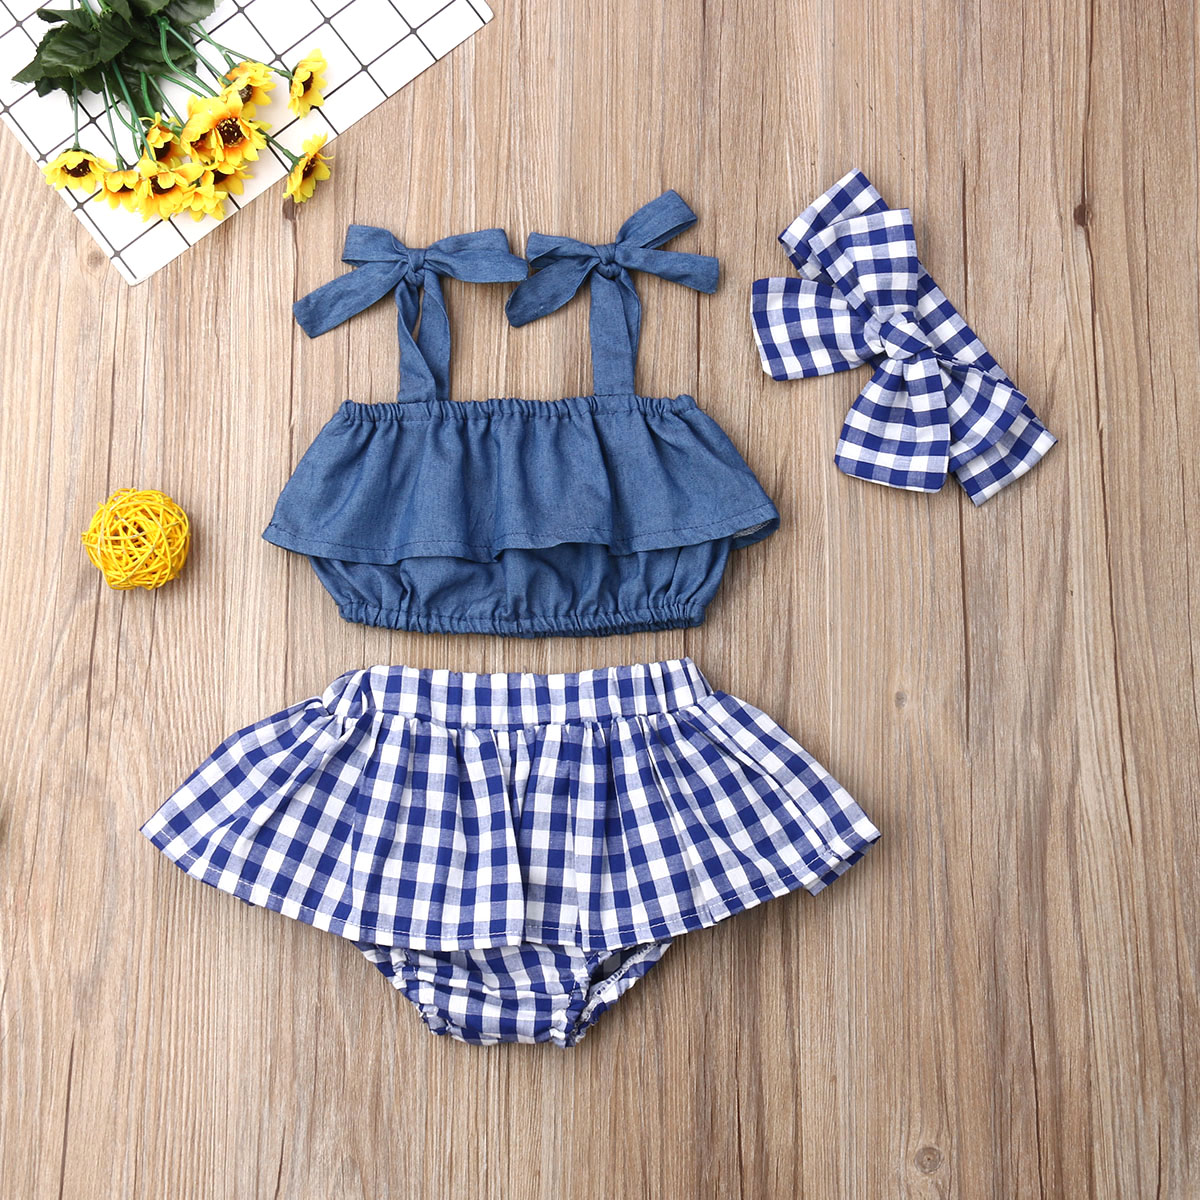 Pudcoco Newest Fashion Summer Newborn Baby Girl Clothes Sling Ruffle Crop Tops Plaid Mini Skirt Headband 3Pcs Outfits Clothes